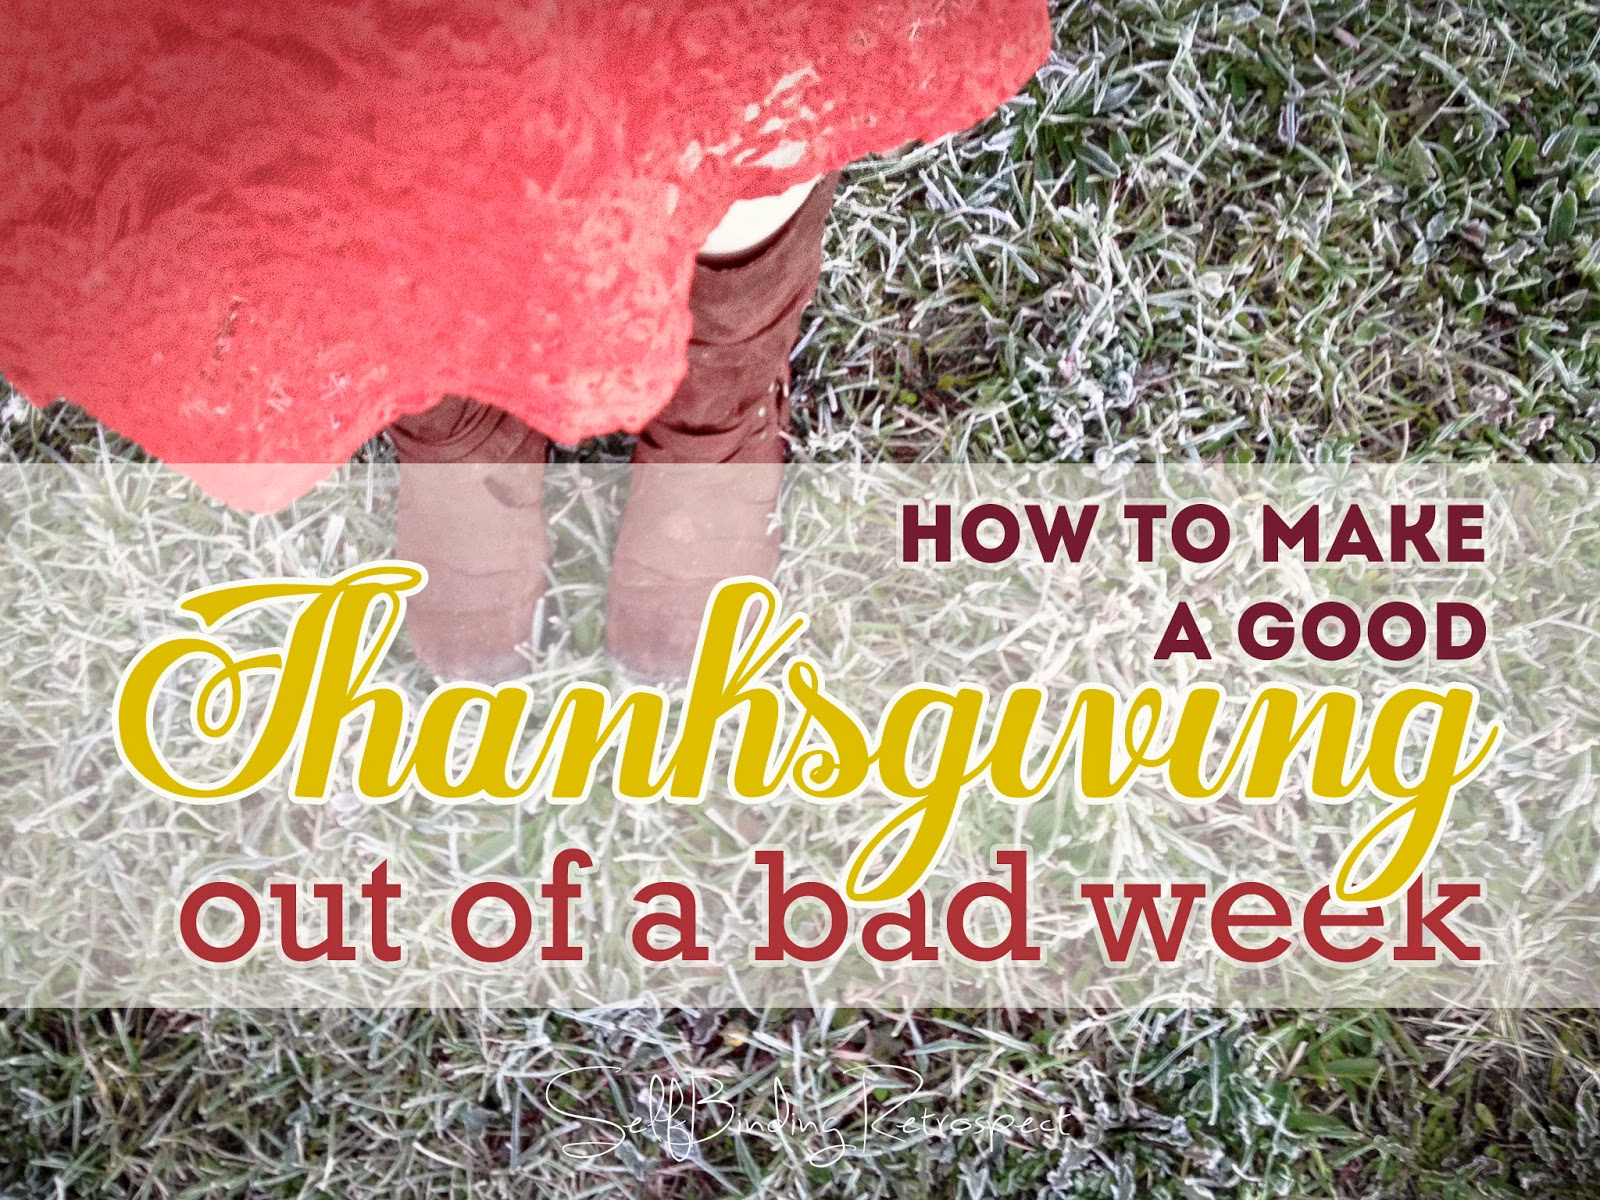 How To Make A Good Thanksgiving Out Of A Bad Week - SelfBinding Retrospect by Alanna Rusnak